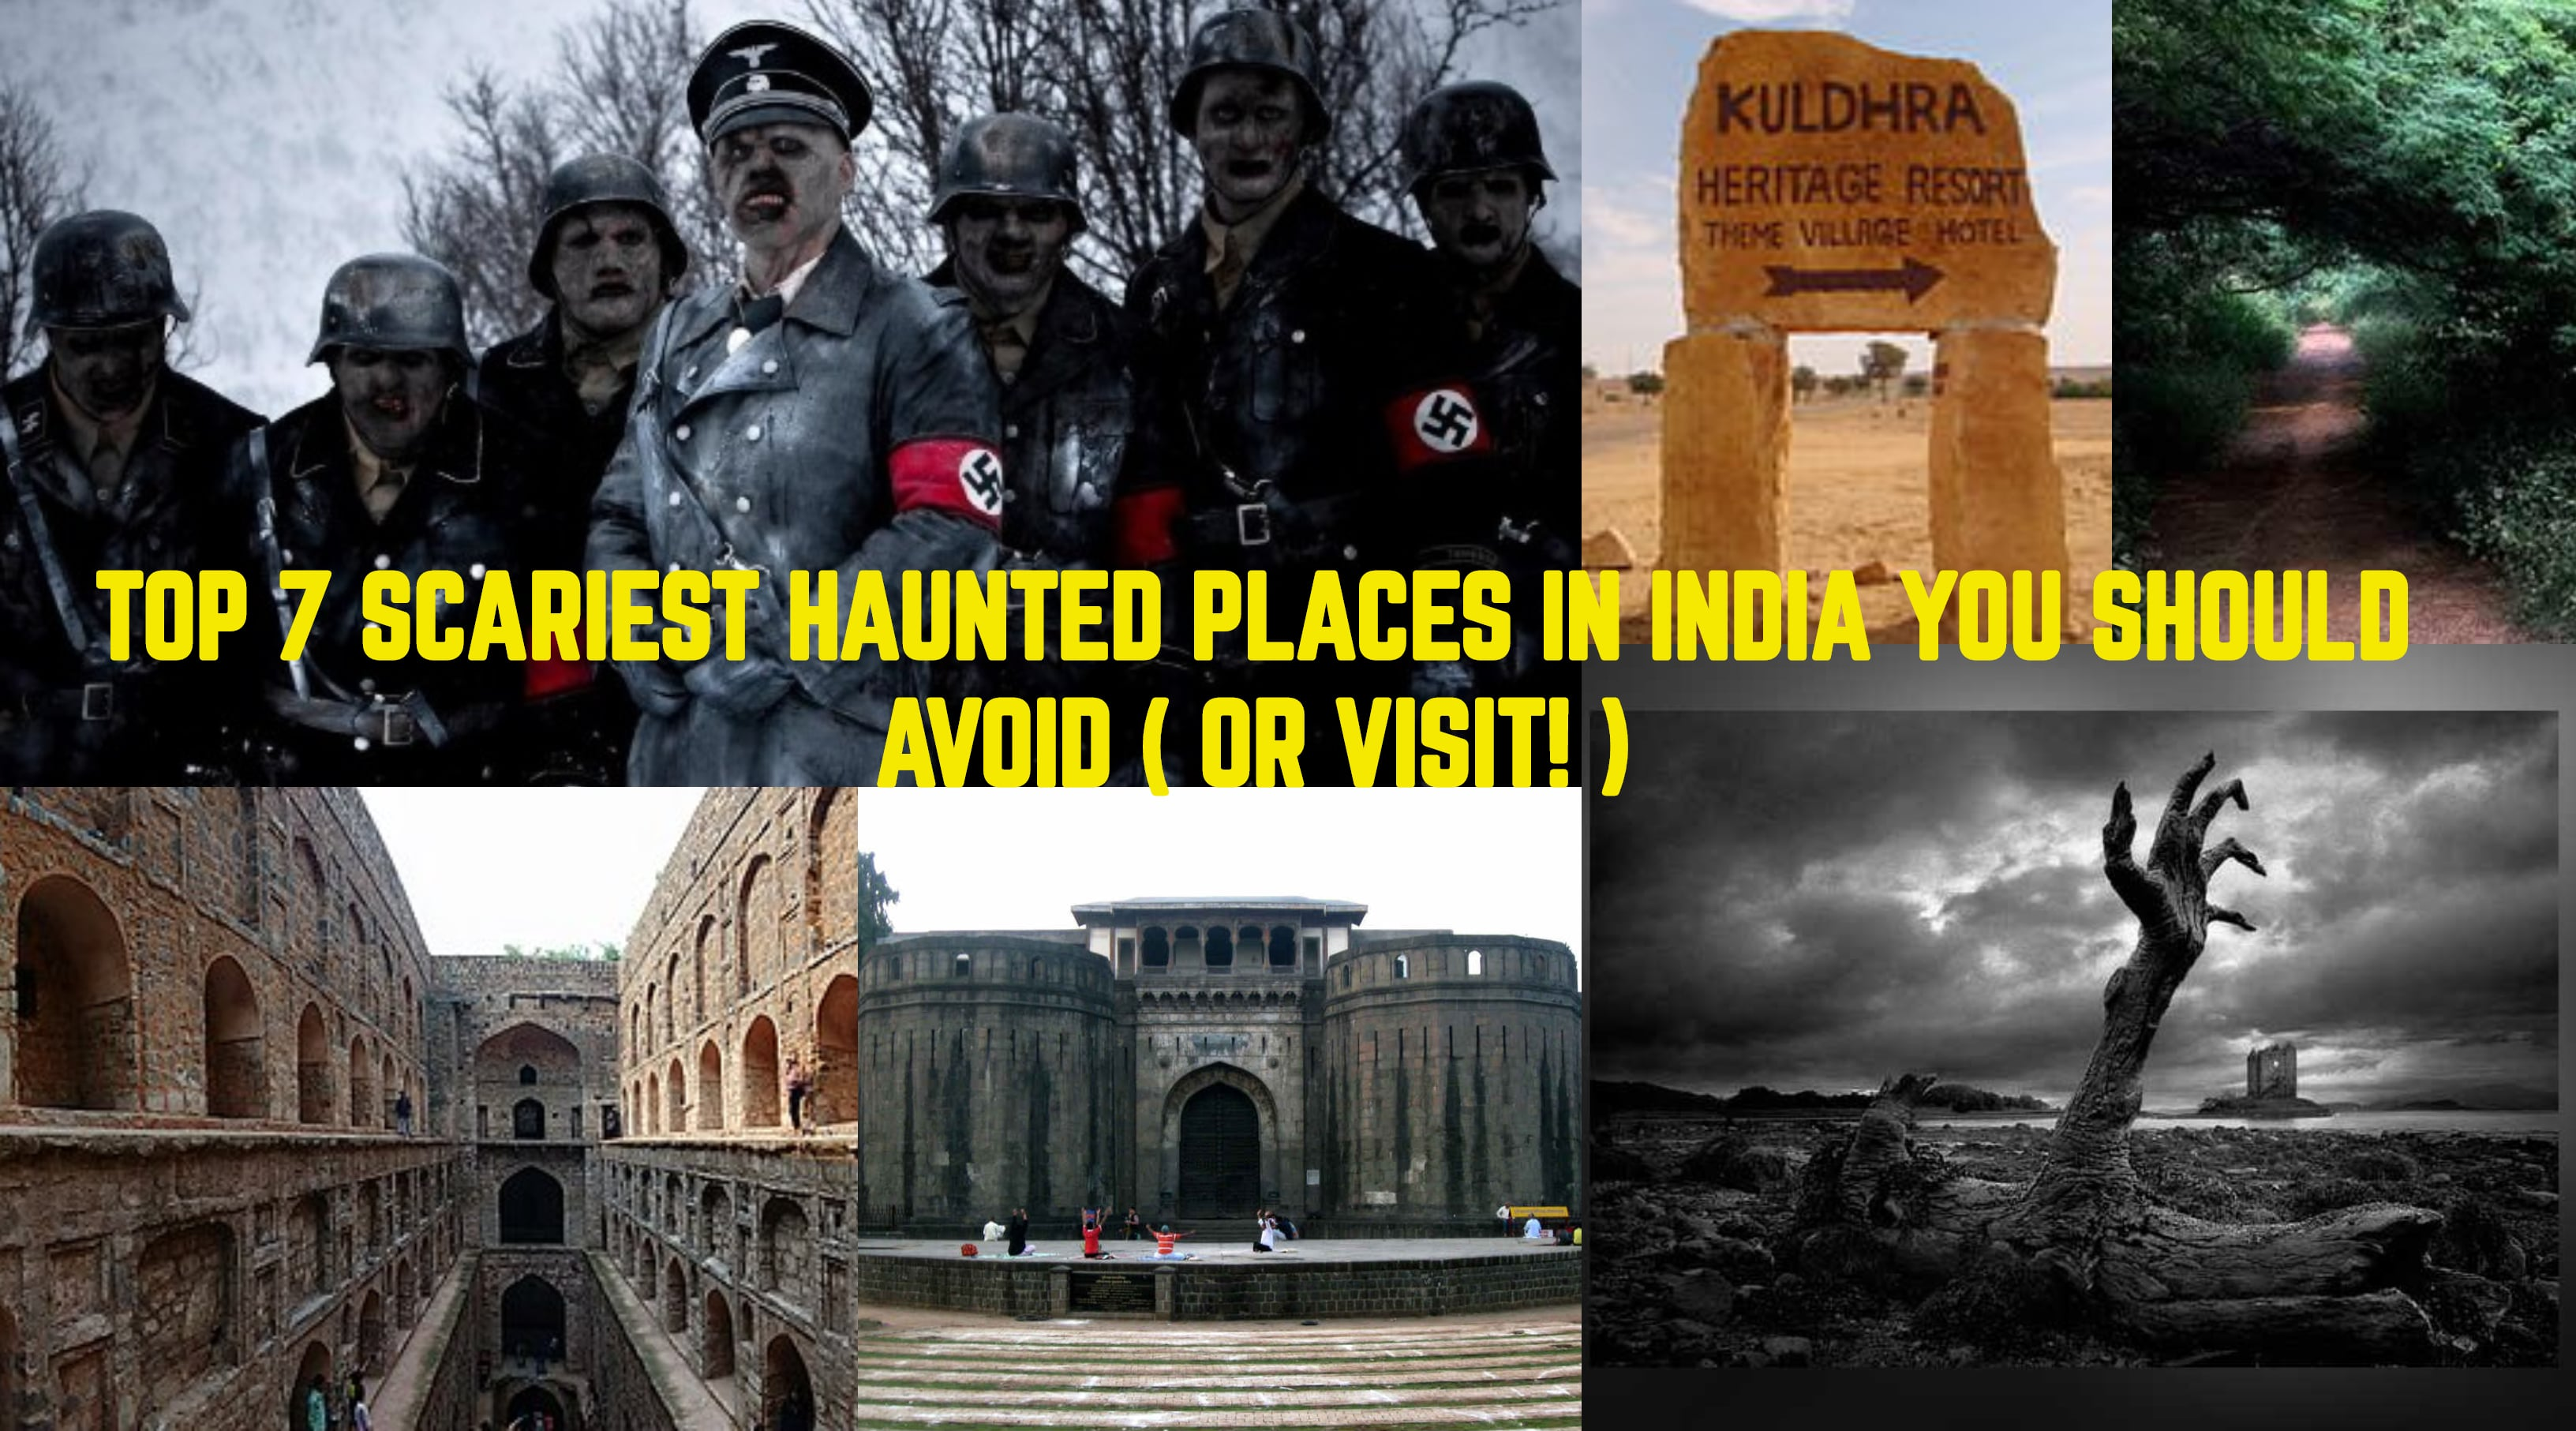 TOP 7 SCARIEST HAUNTED PLACES IN INDIA YOU SHOULD AVOID ( OR VISIT! )